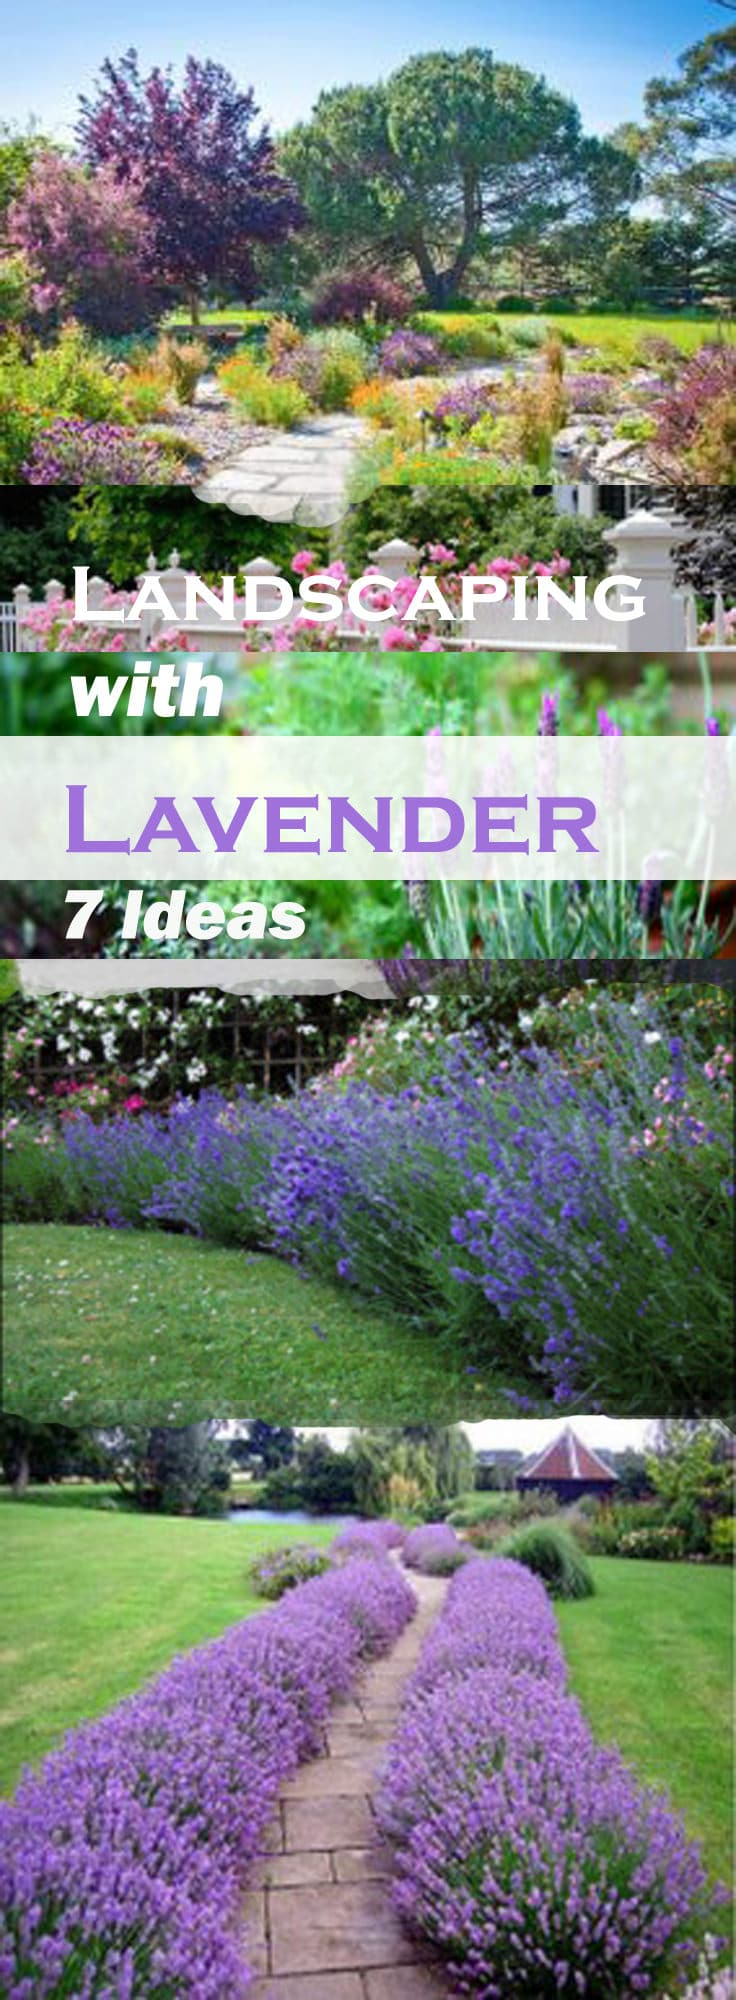 Landscaping with lavender 7 garden design ideas for Landscape garden designs ideas